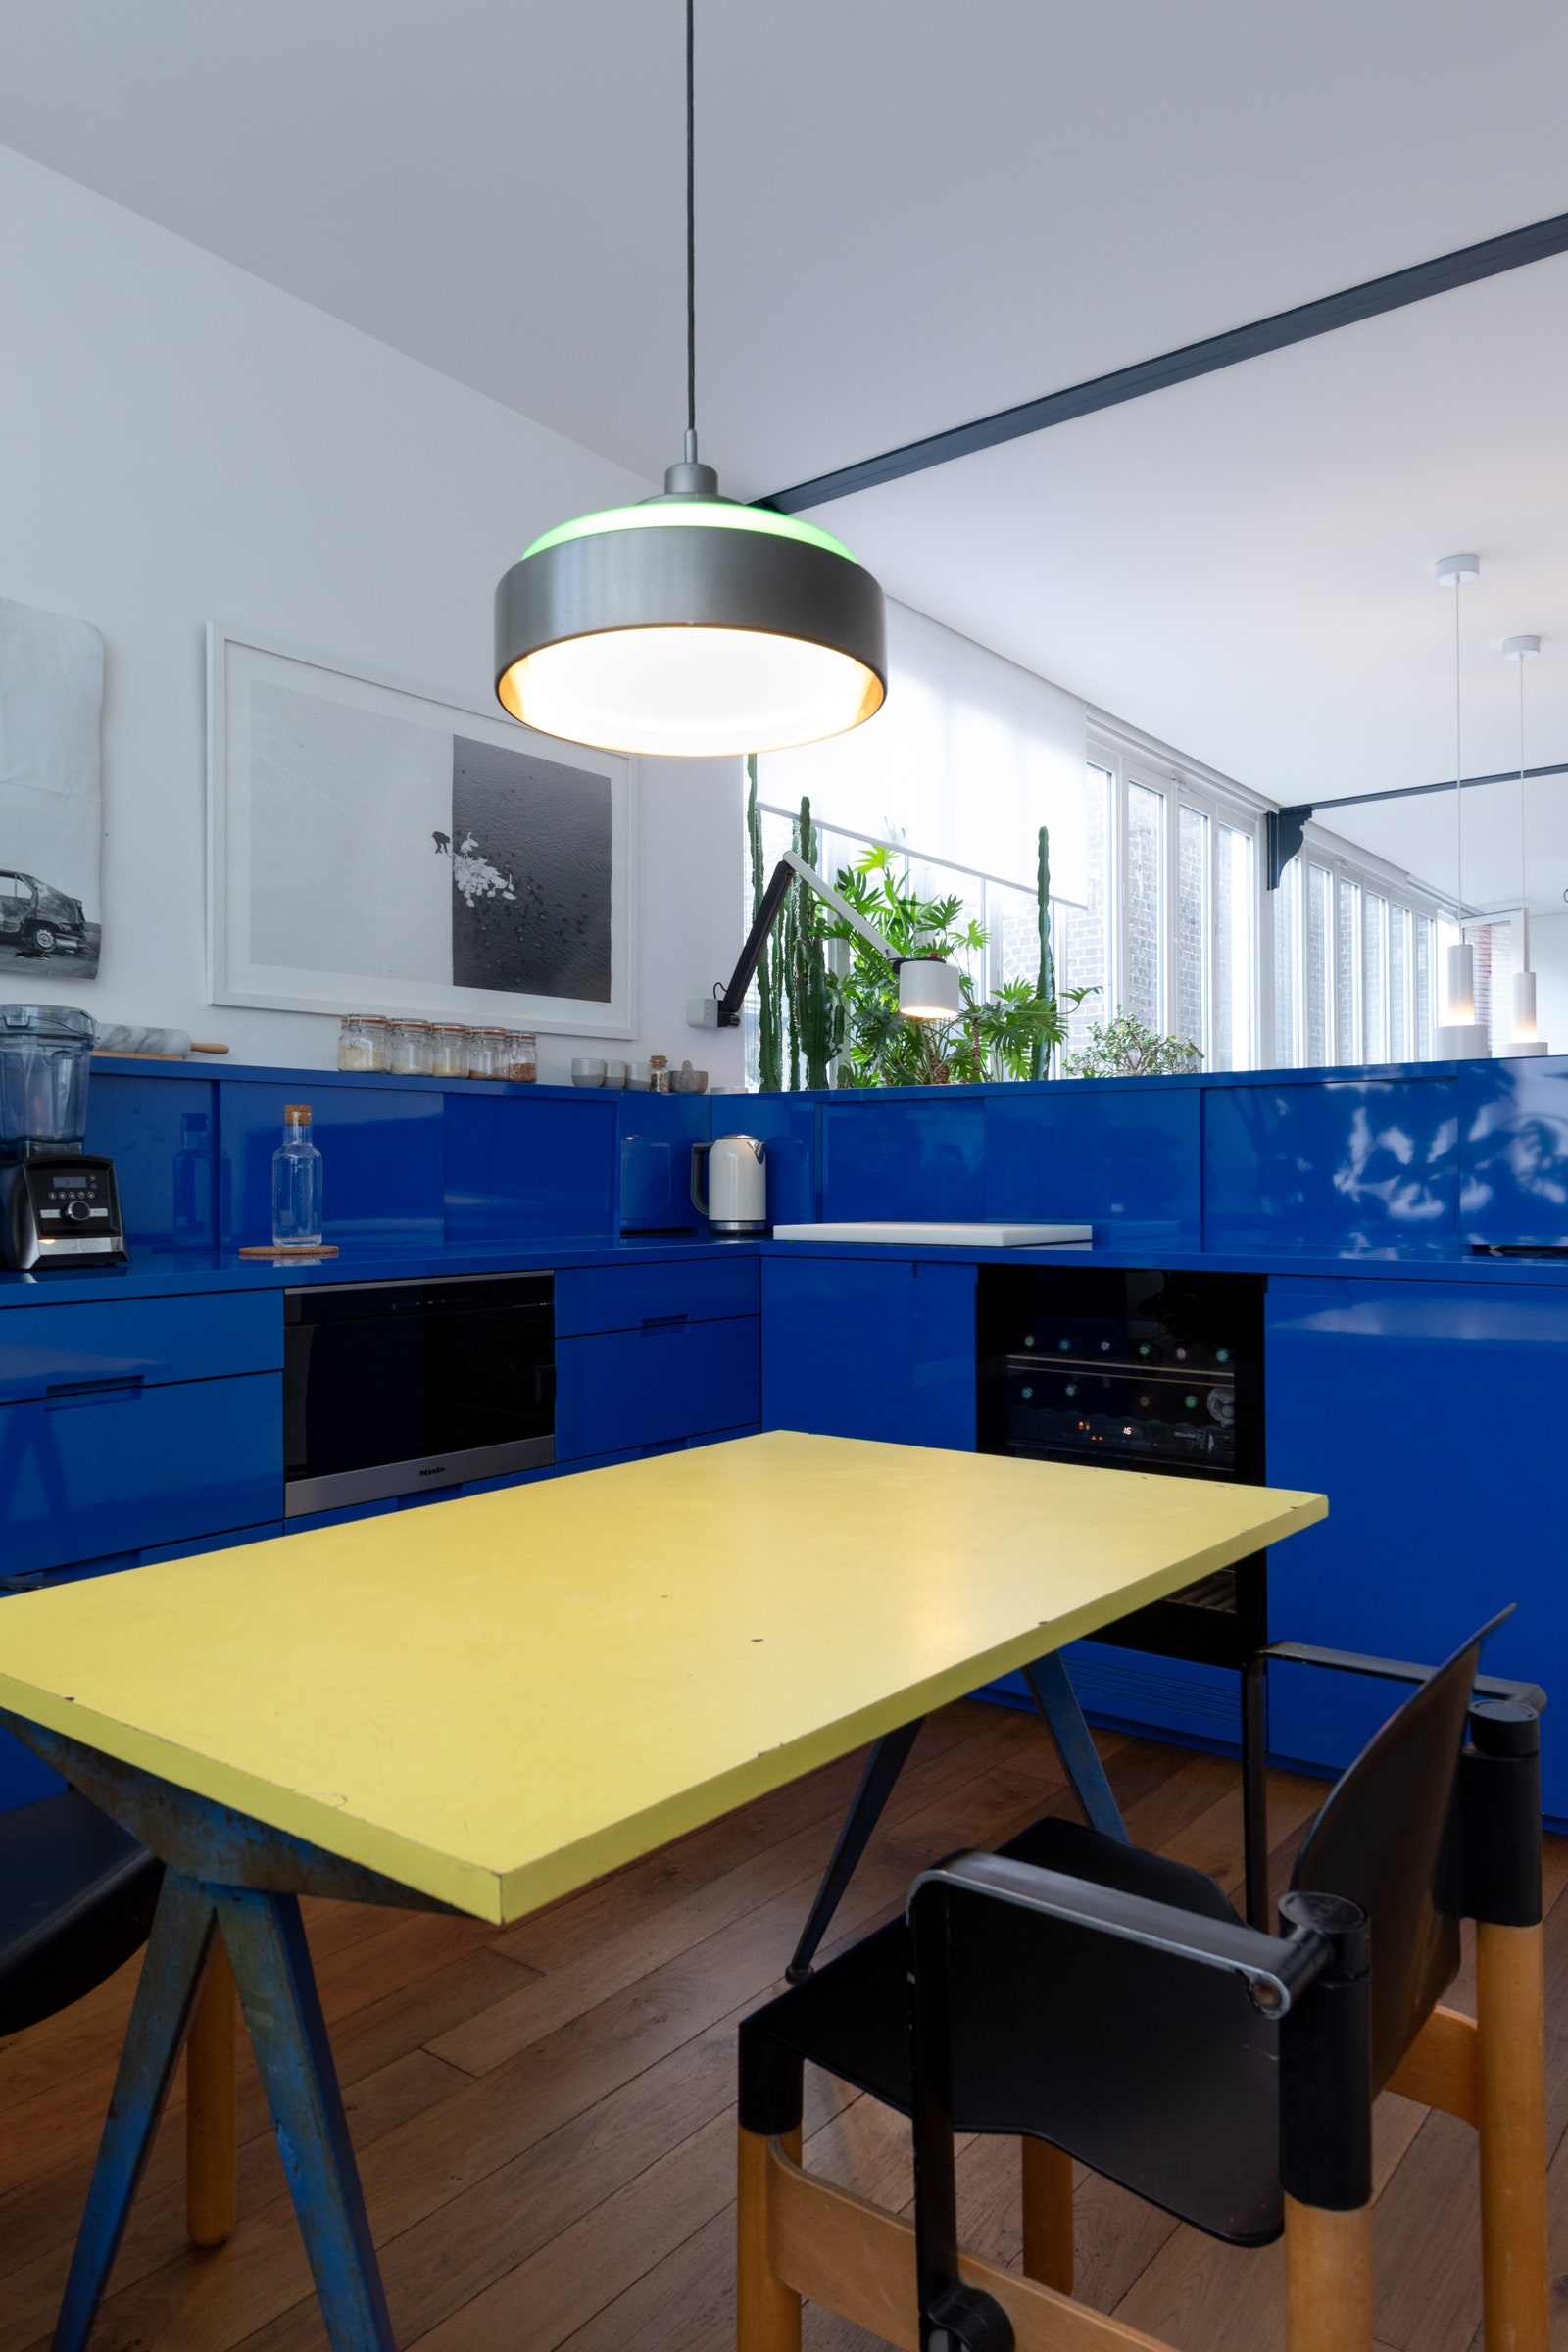 In his shiny cobalt kitchen Yoann frequently cooks pasta for his crew.